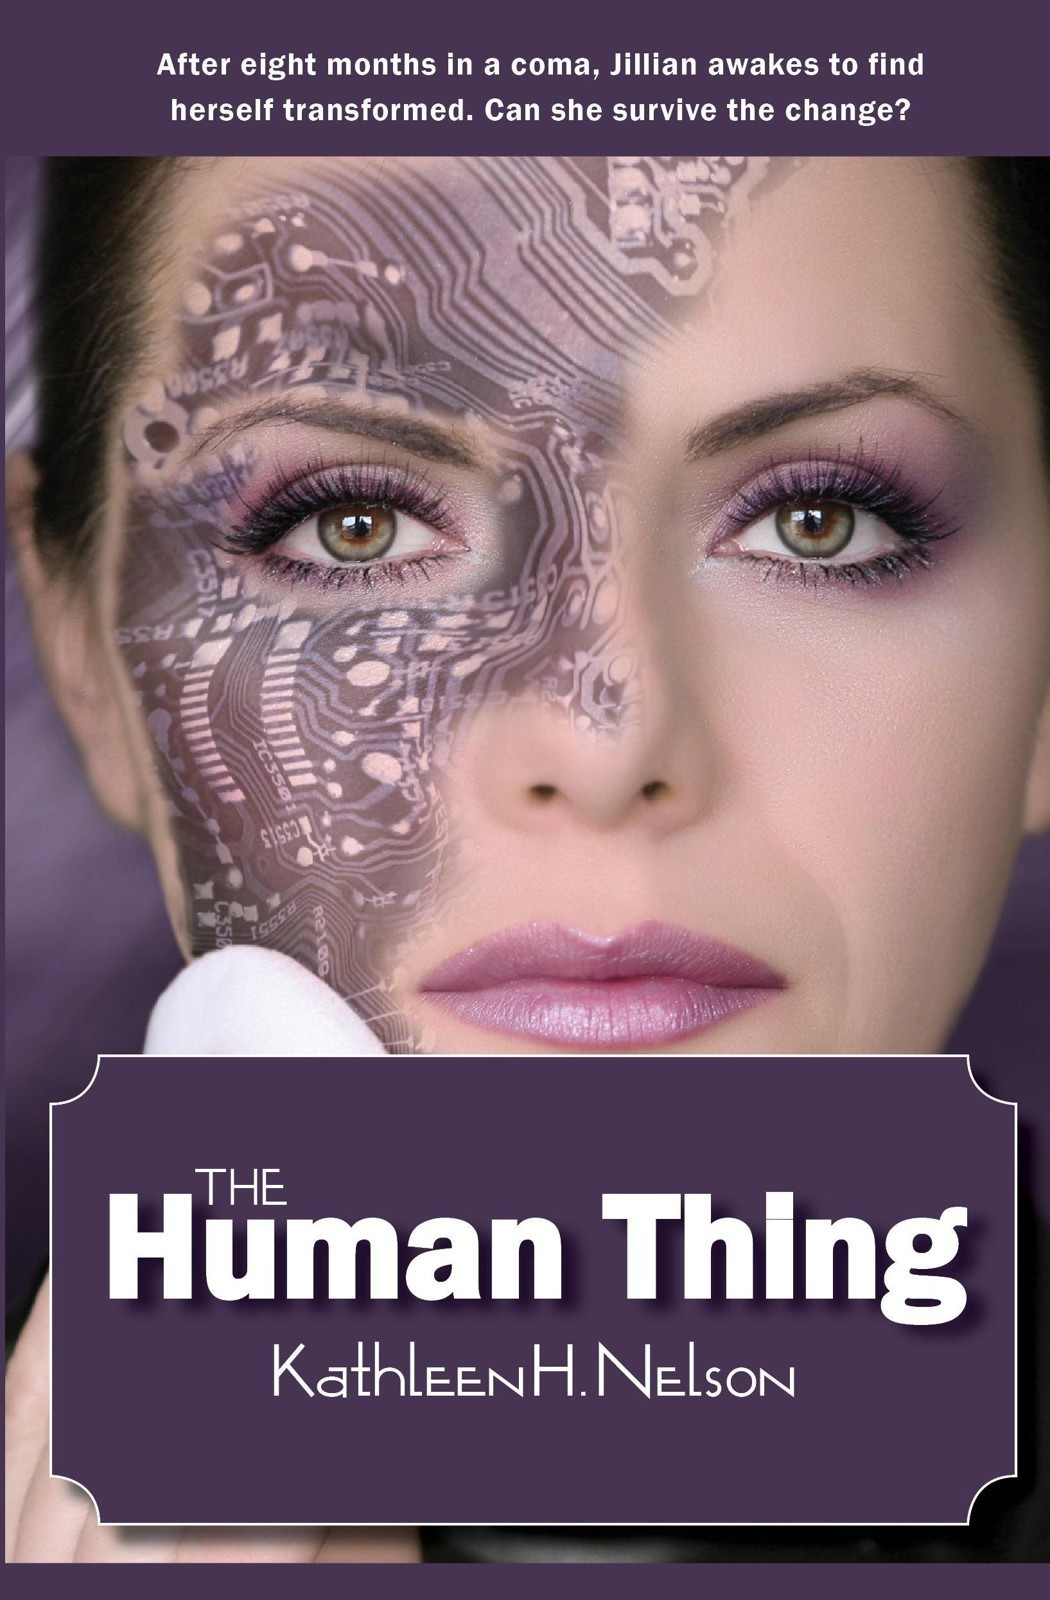 The Human Thing by Kathleen H. Nelson 00029